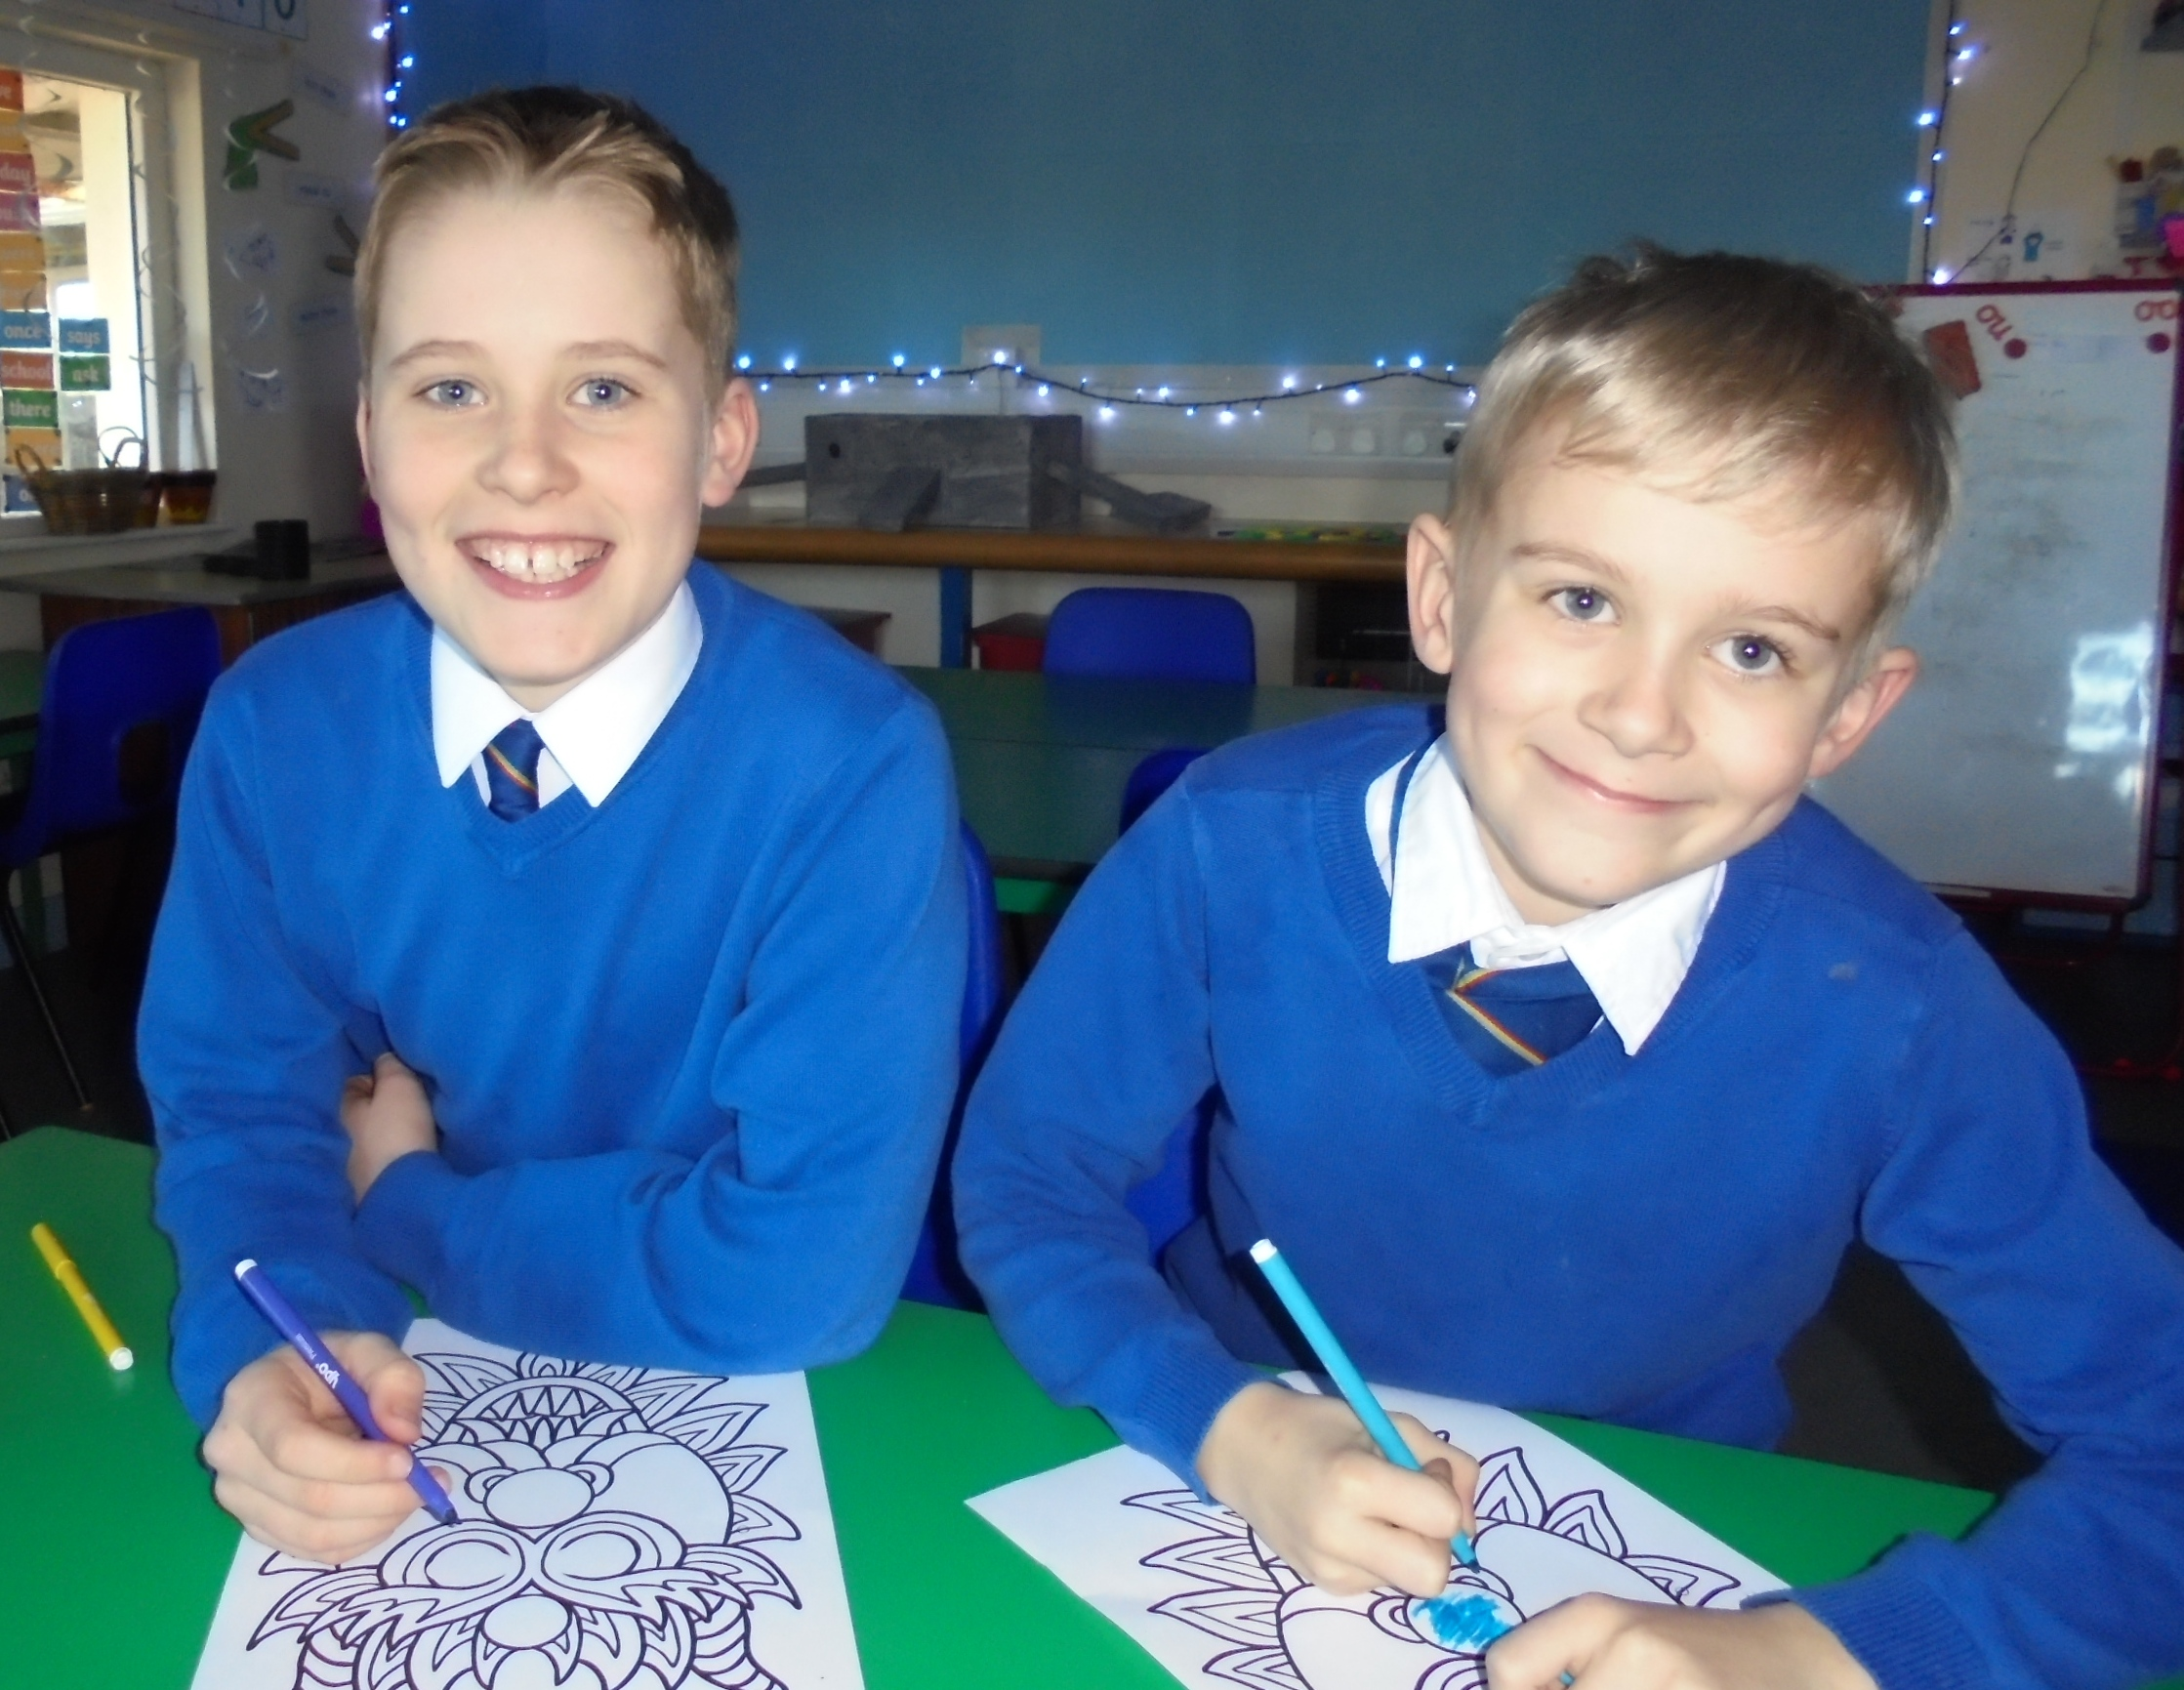 Local school pupils help to spread data security message for the NHS